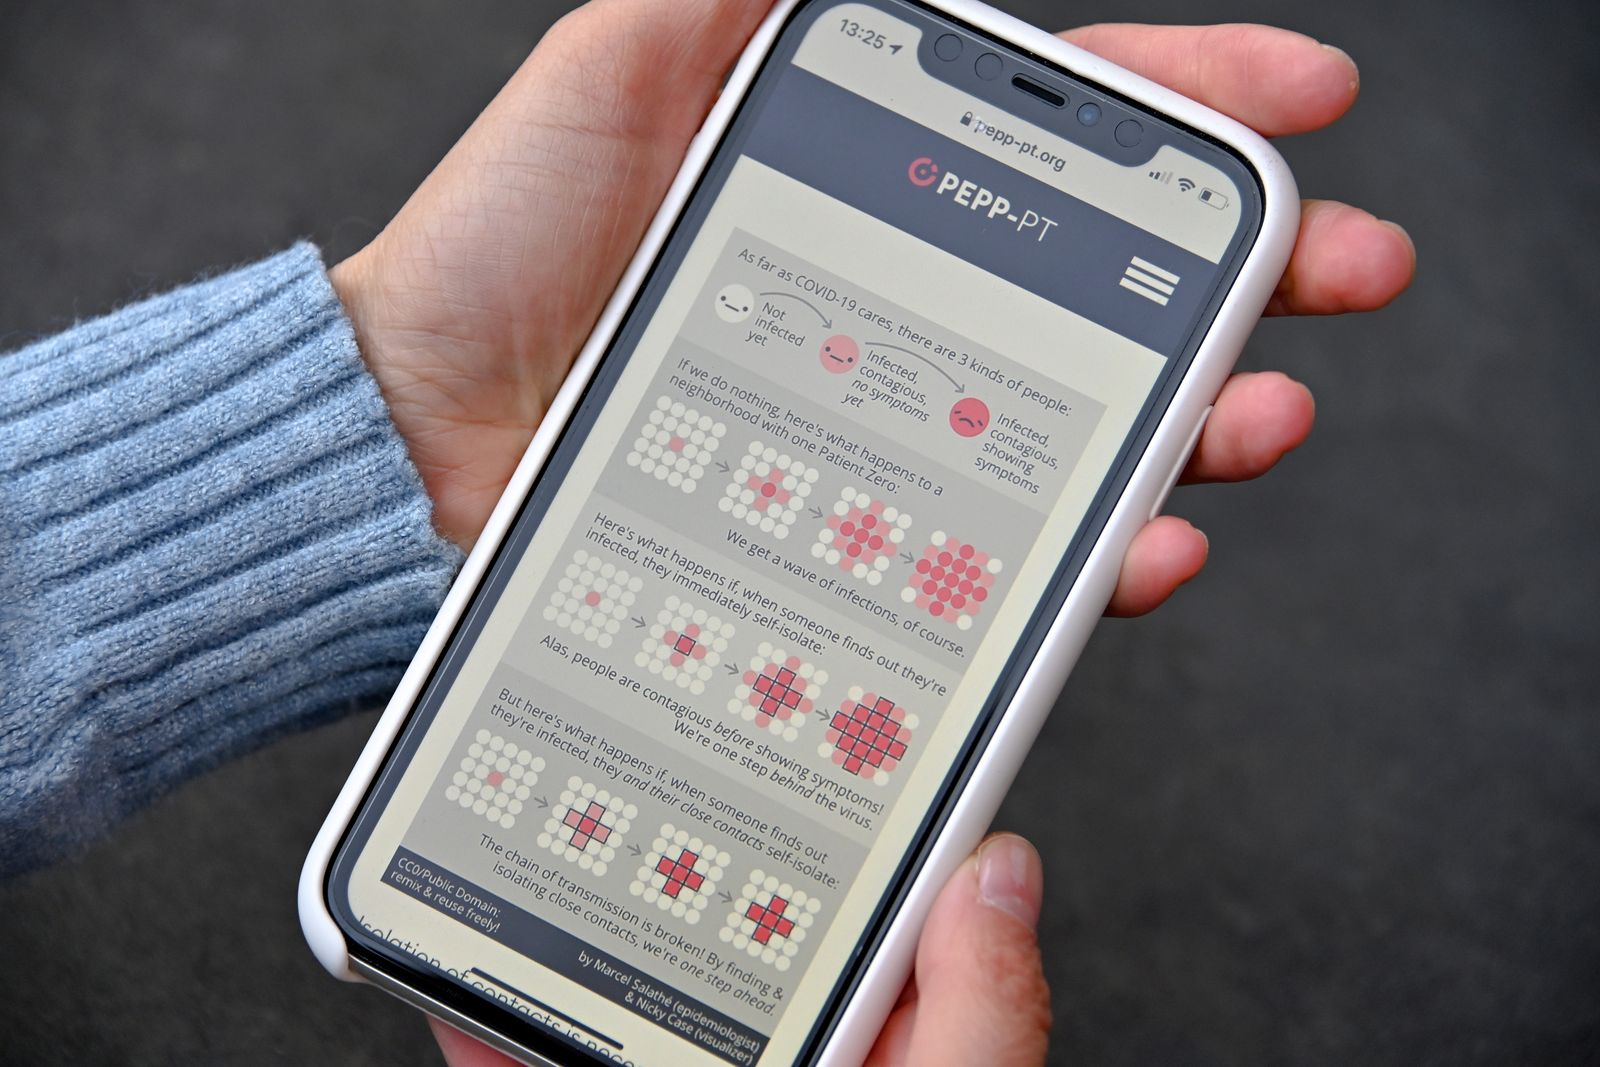 European Pepp-PT coronavirus app, Cologne, Germany - 17 Apr 2020